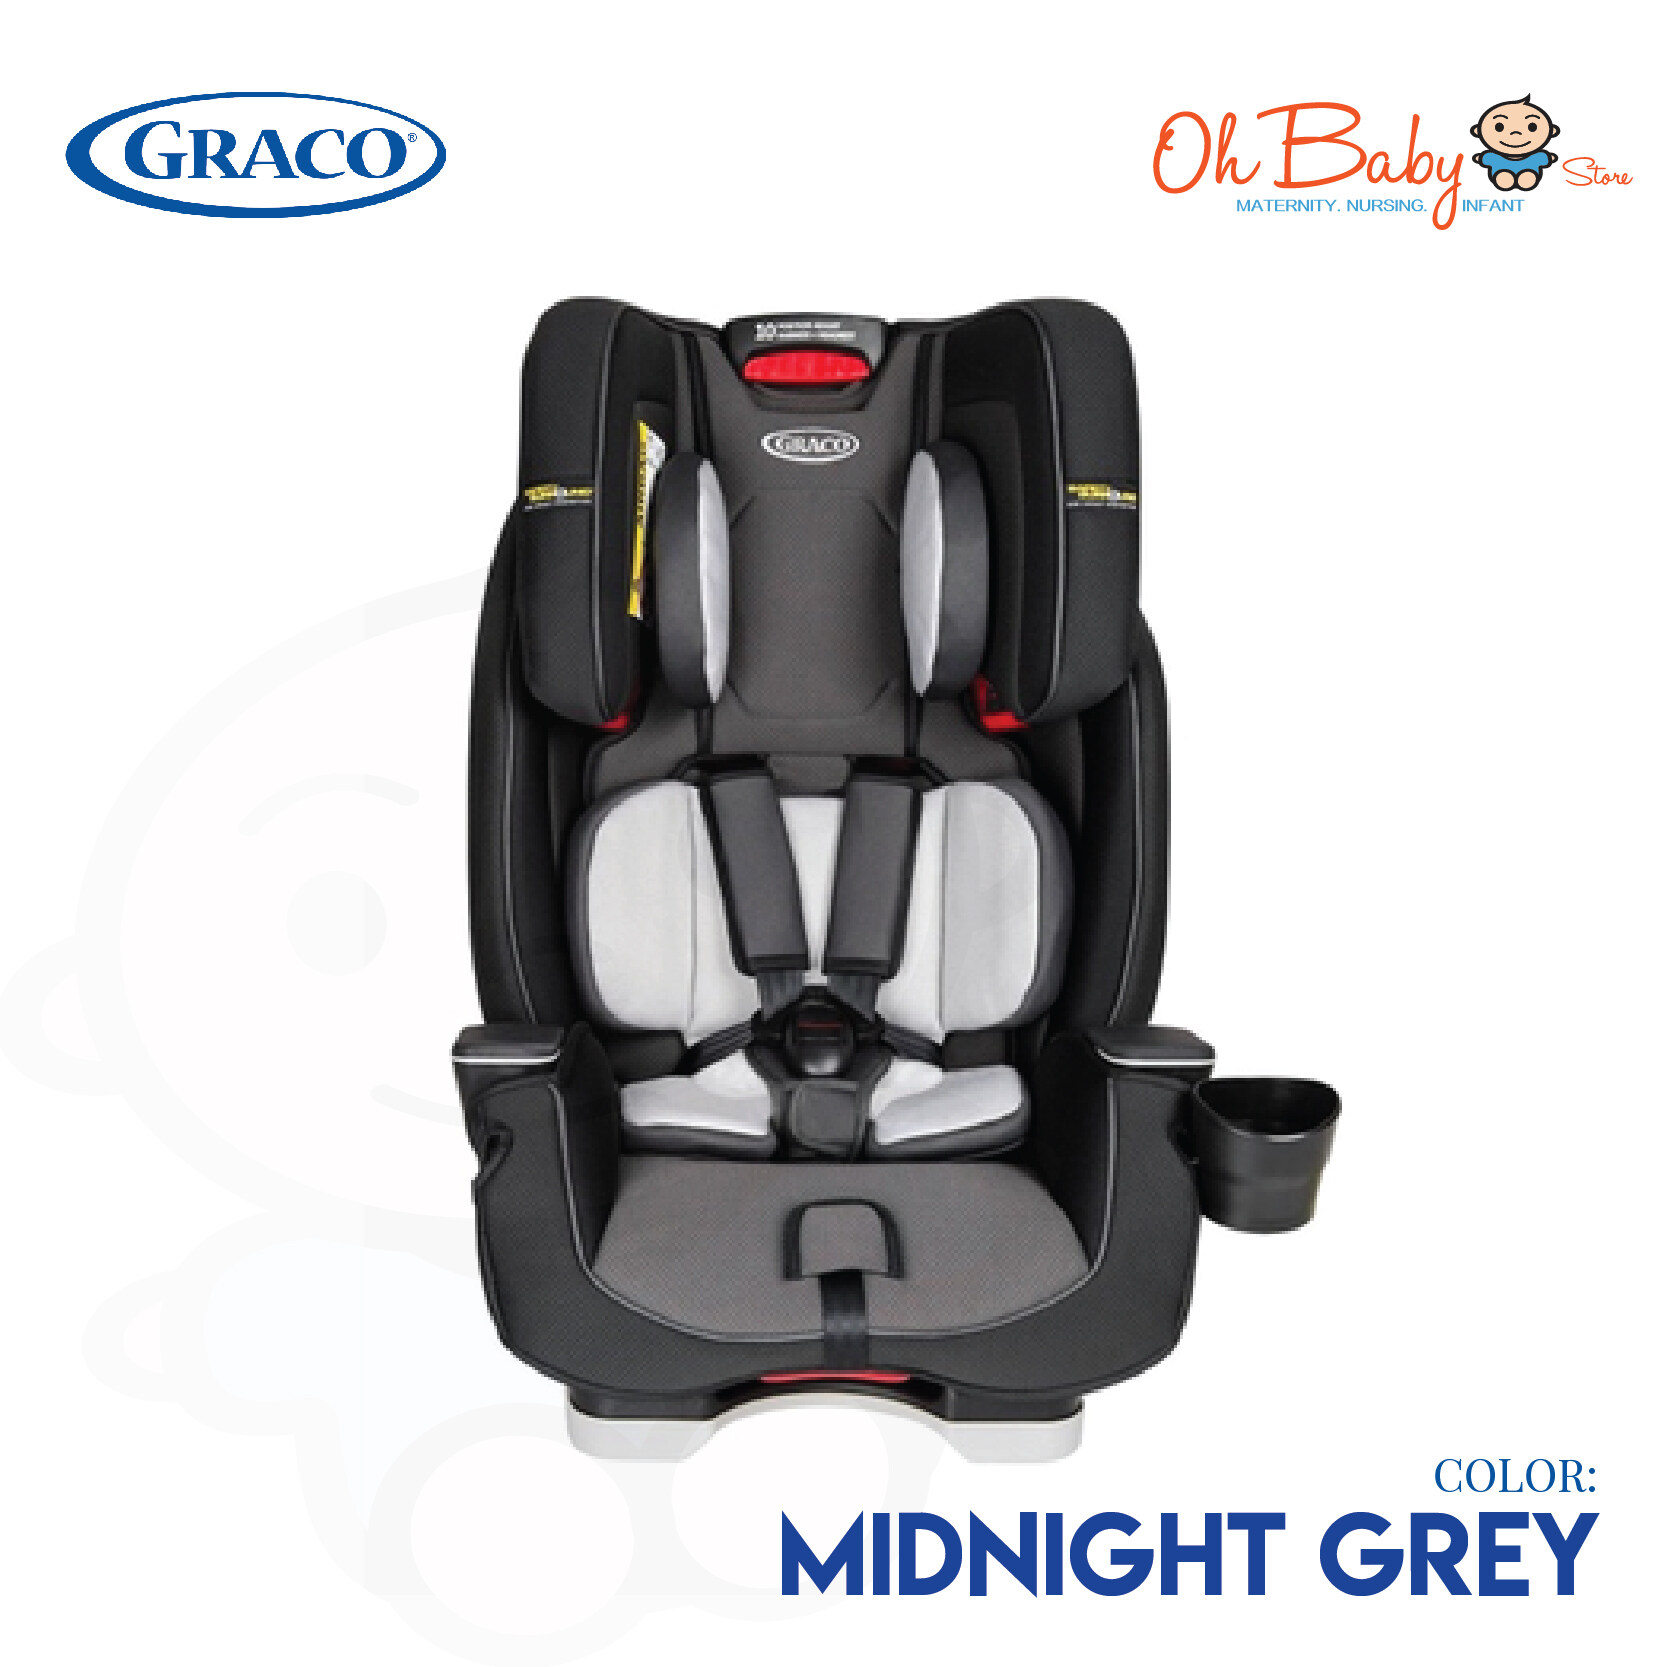 Graco Milestone Car Seat Isofix Graco Milestone Lx All In One Convertible Car Seat